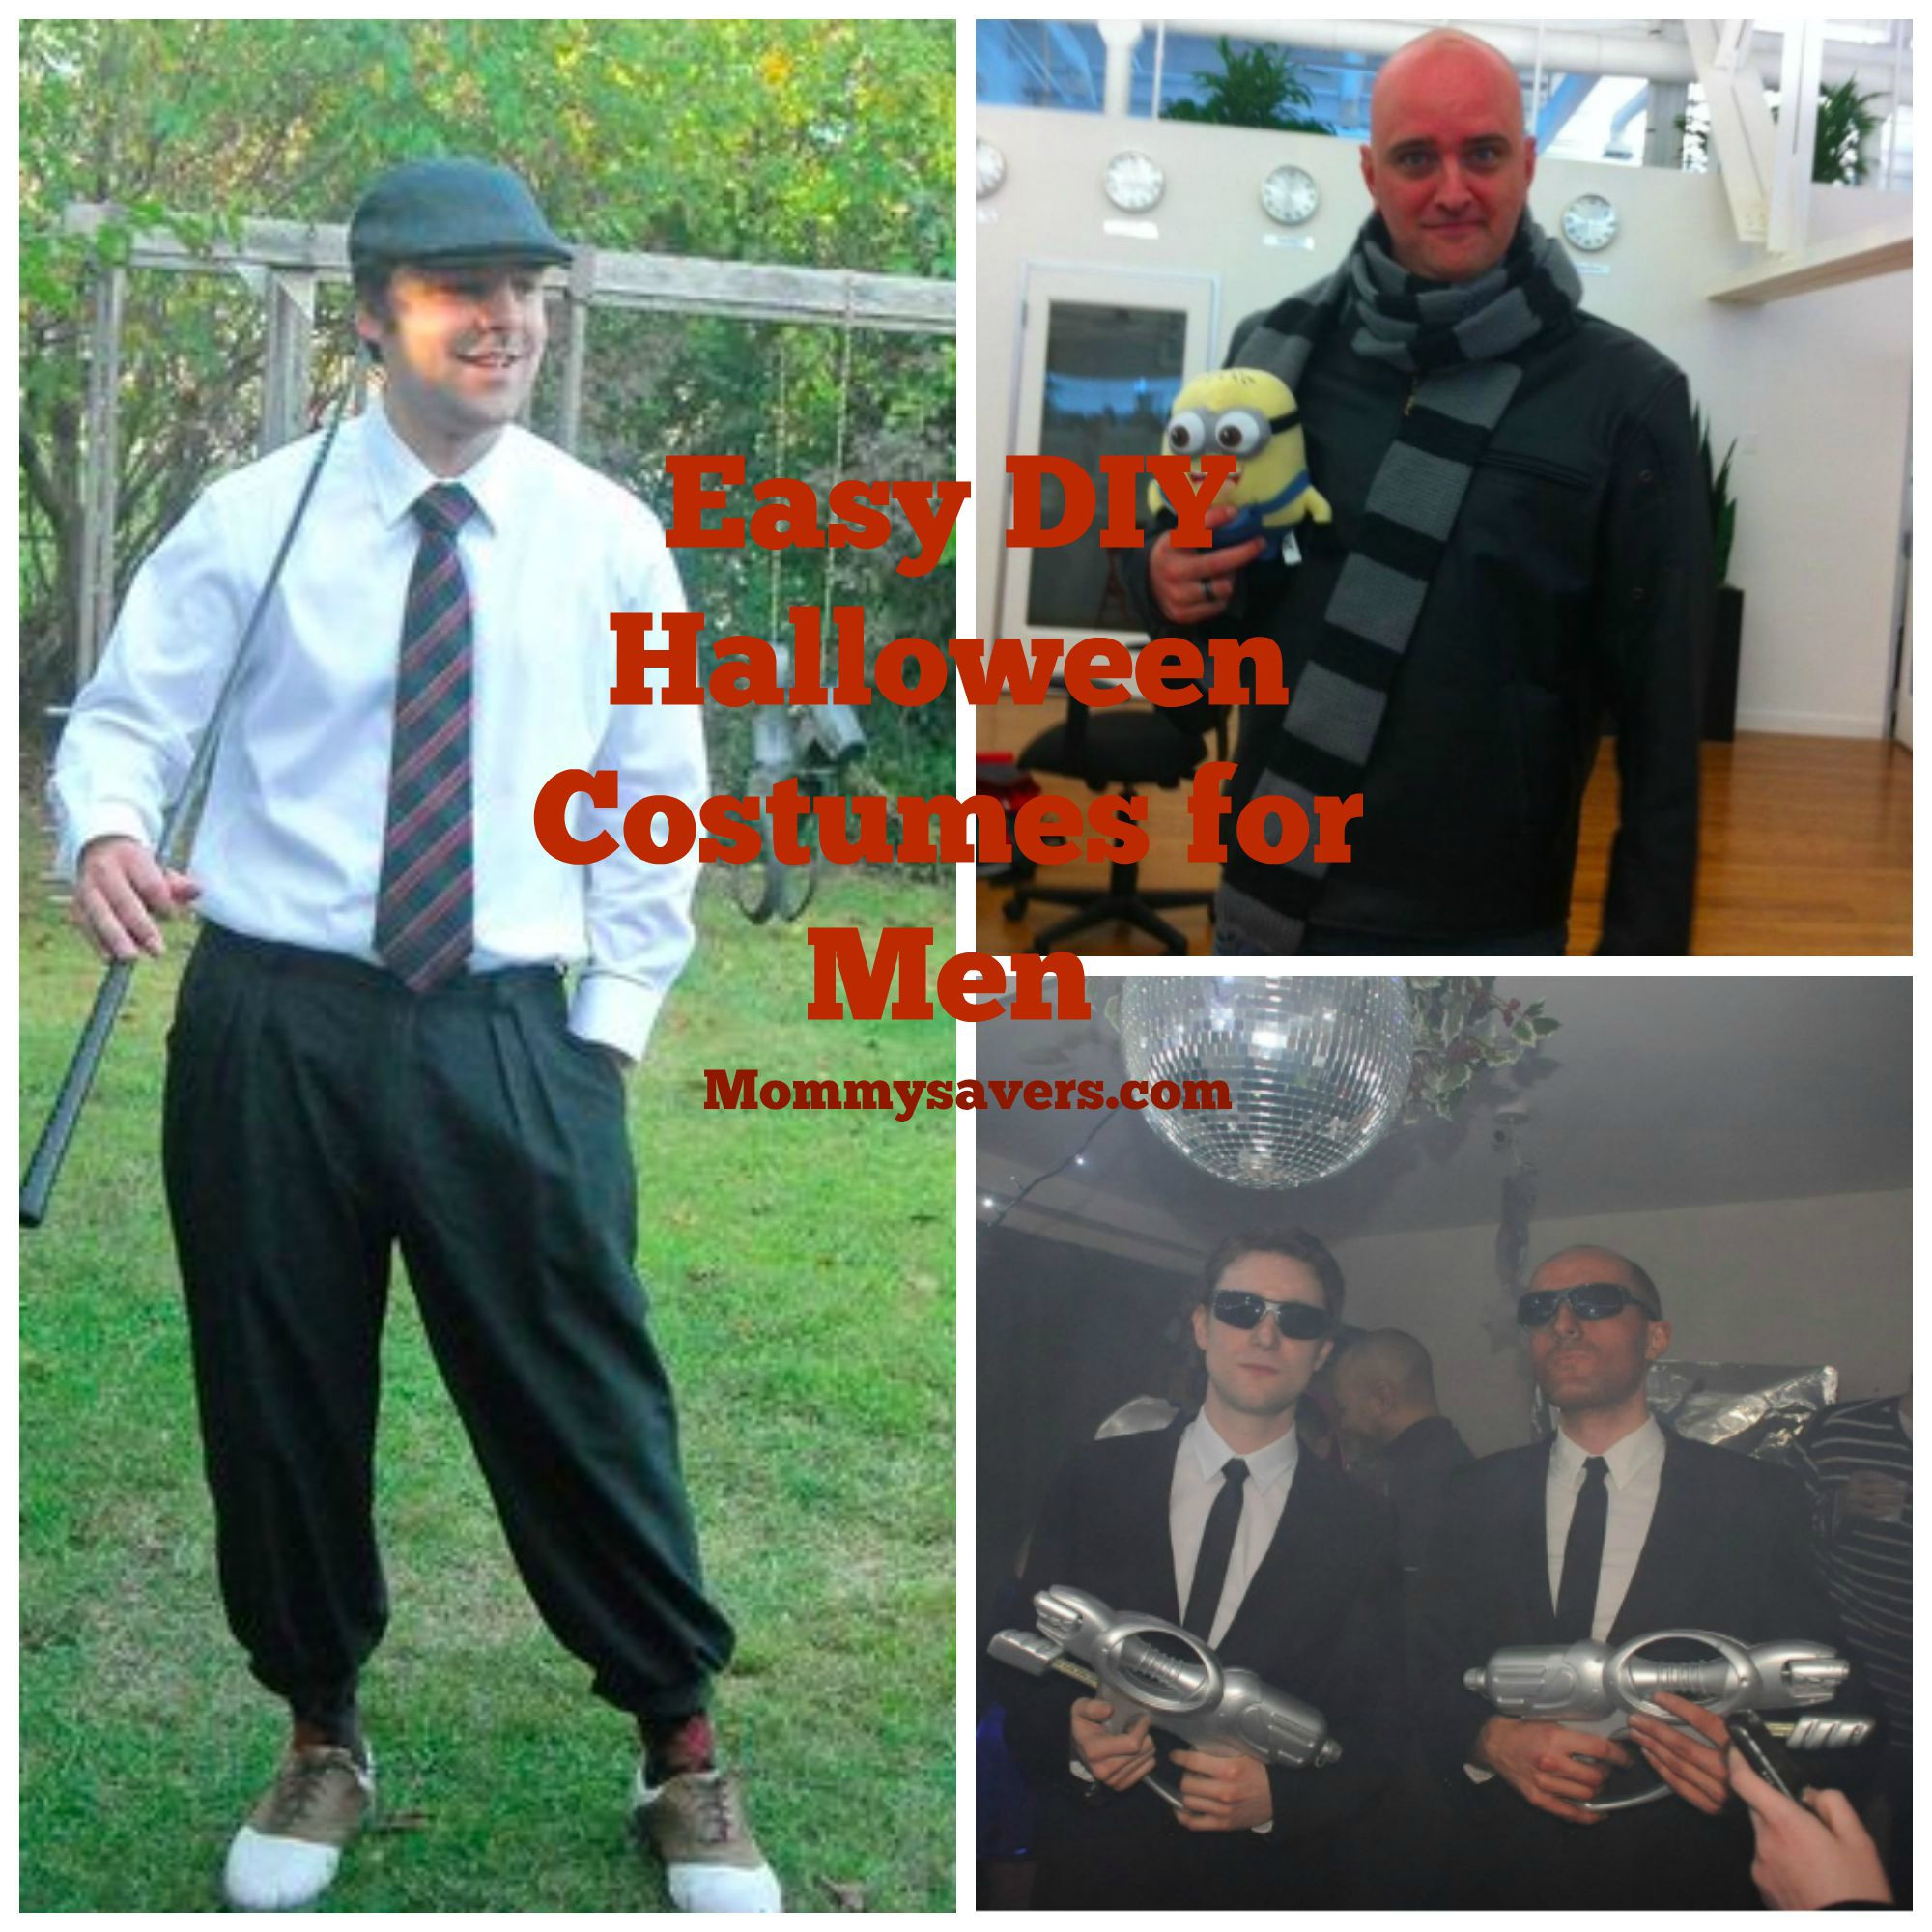 Best ideas about DIY Costumes Men . Save or Pin DIY Easy Halloween Costume Ideas for Men Mommysavers Now.